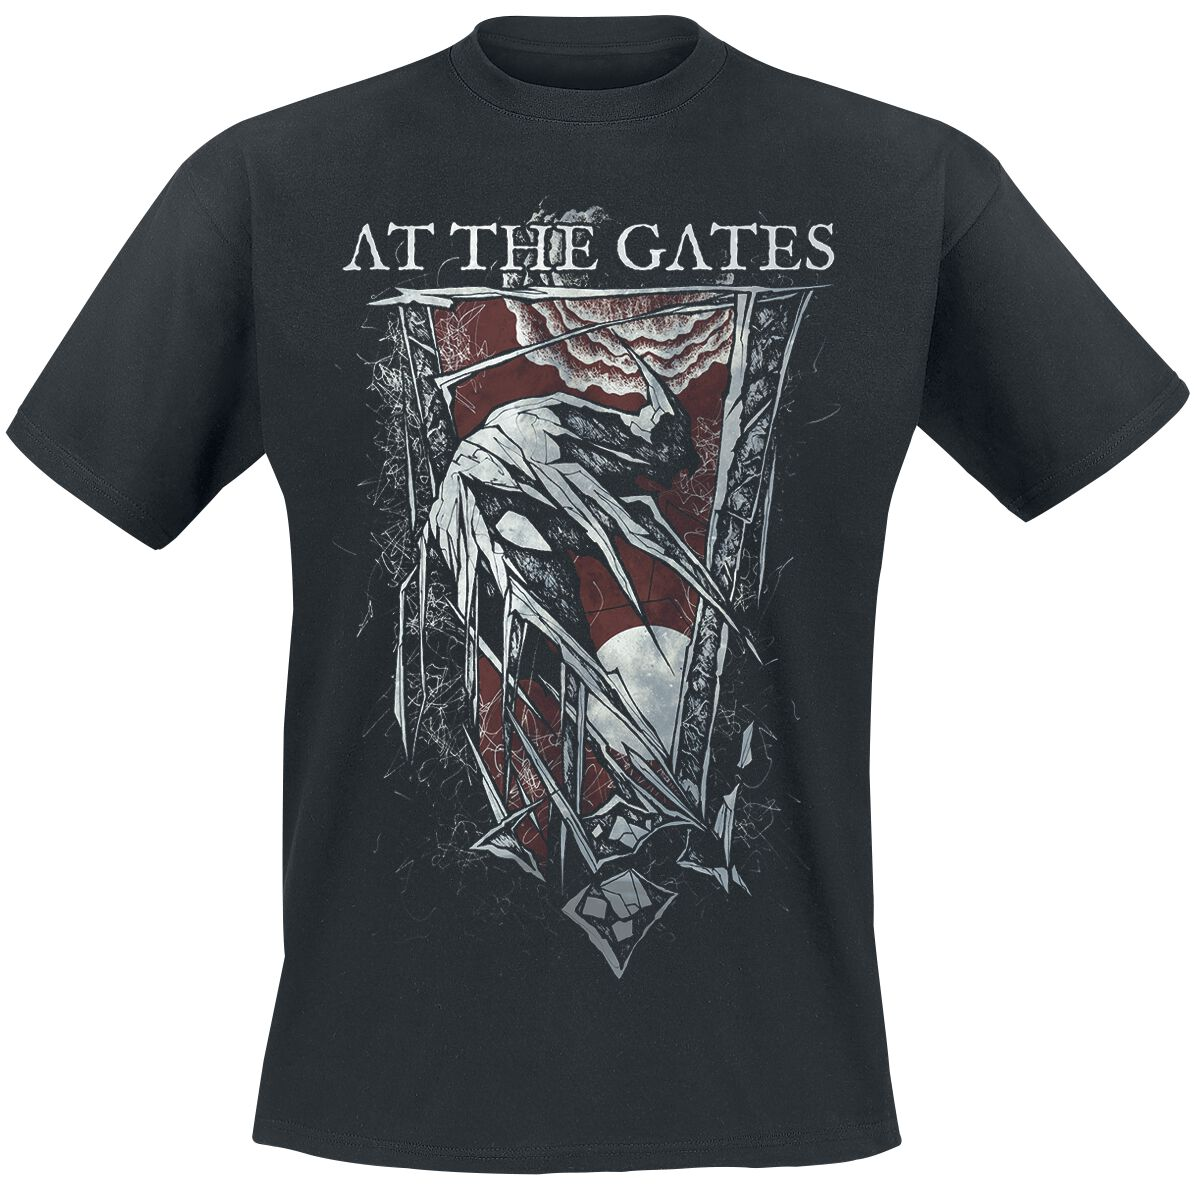 Image of At The Gates Nightmare T-Shirt schwarz